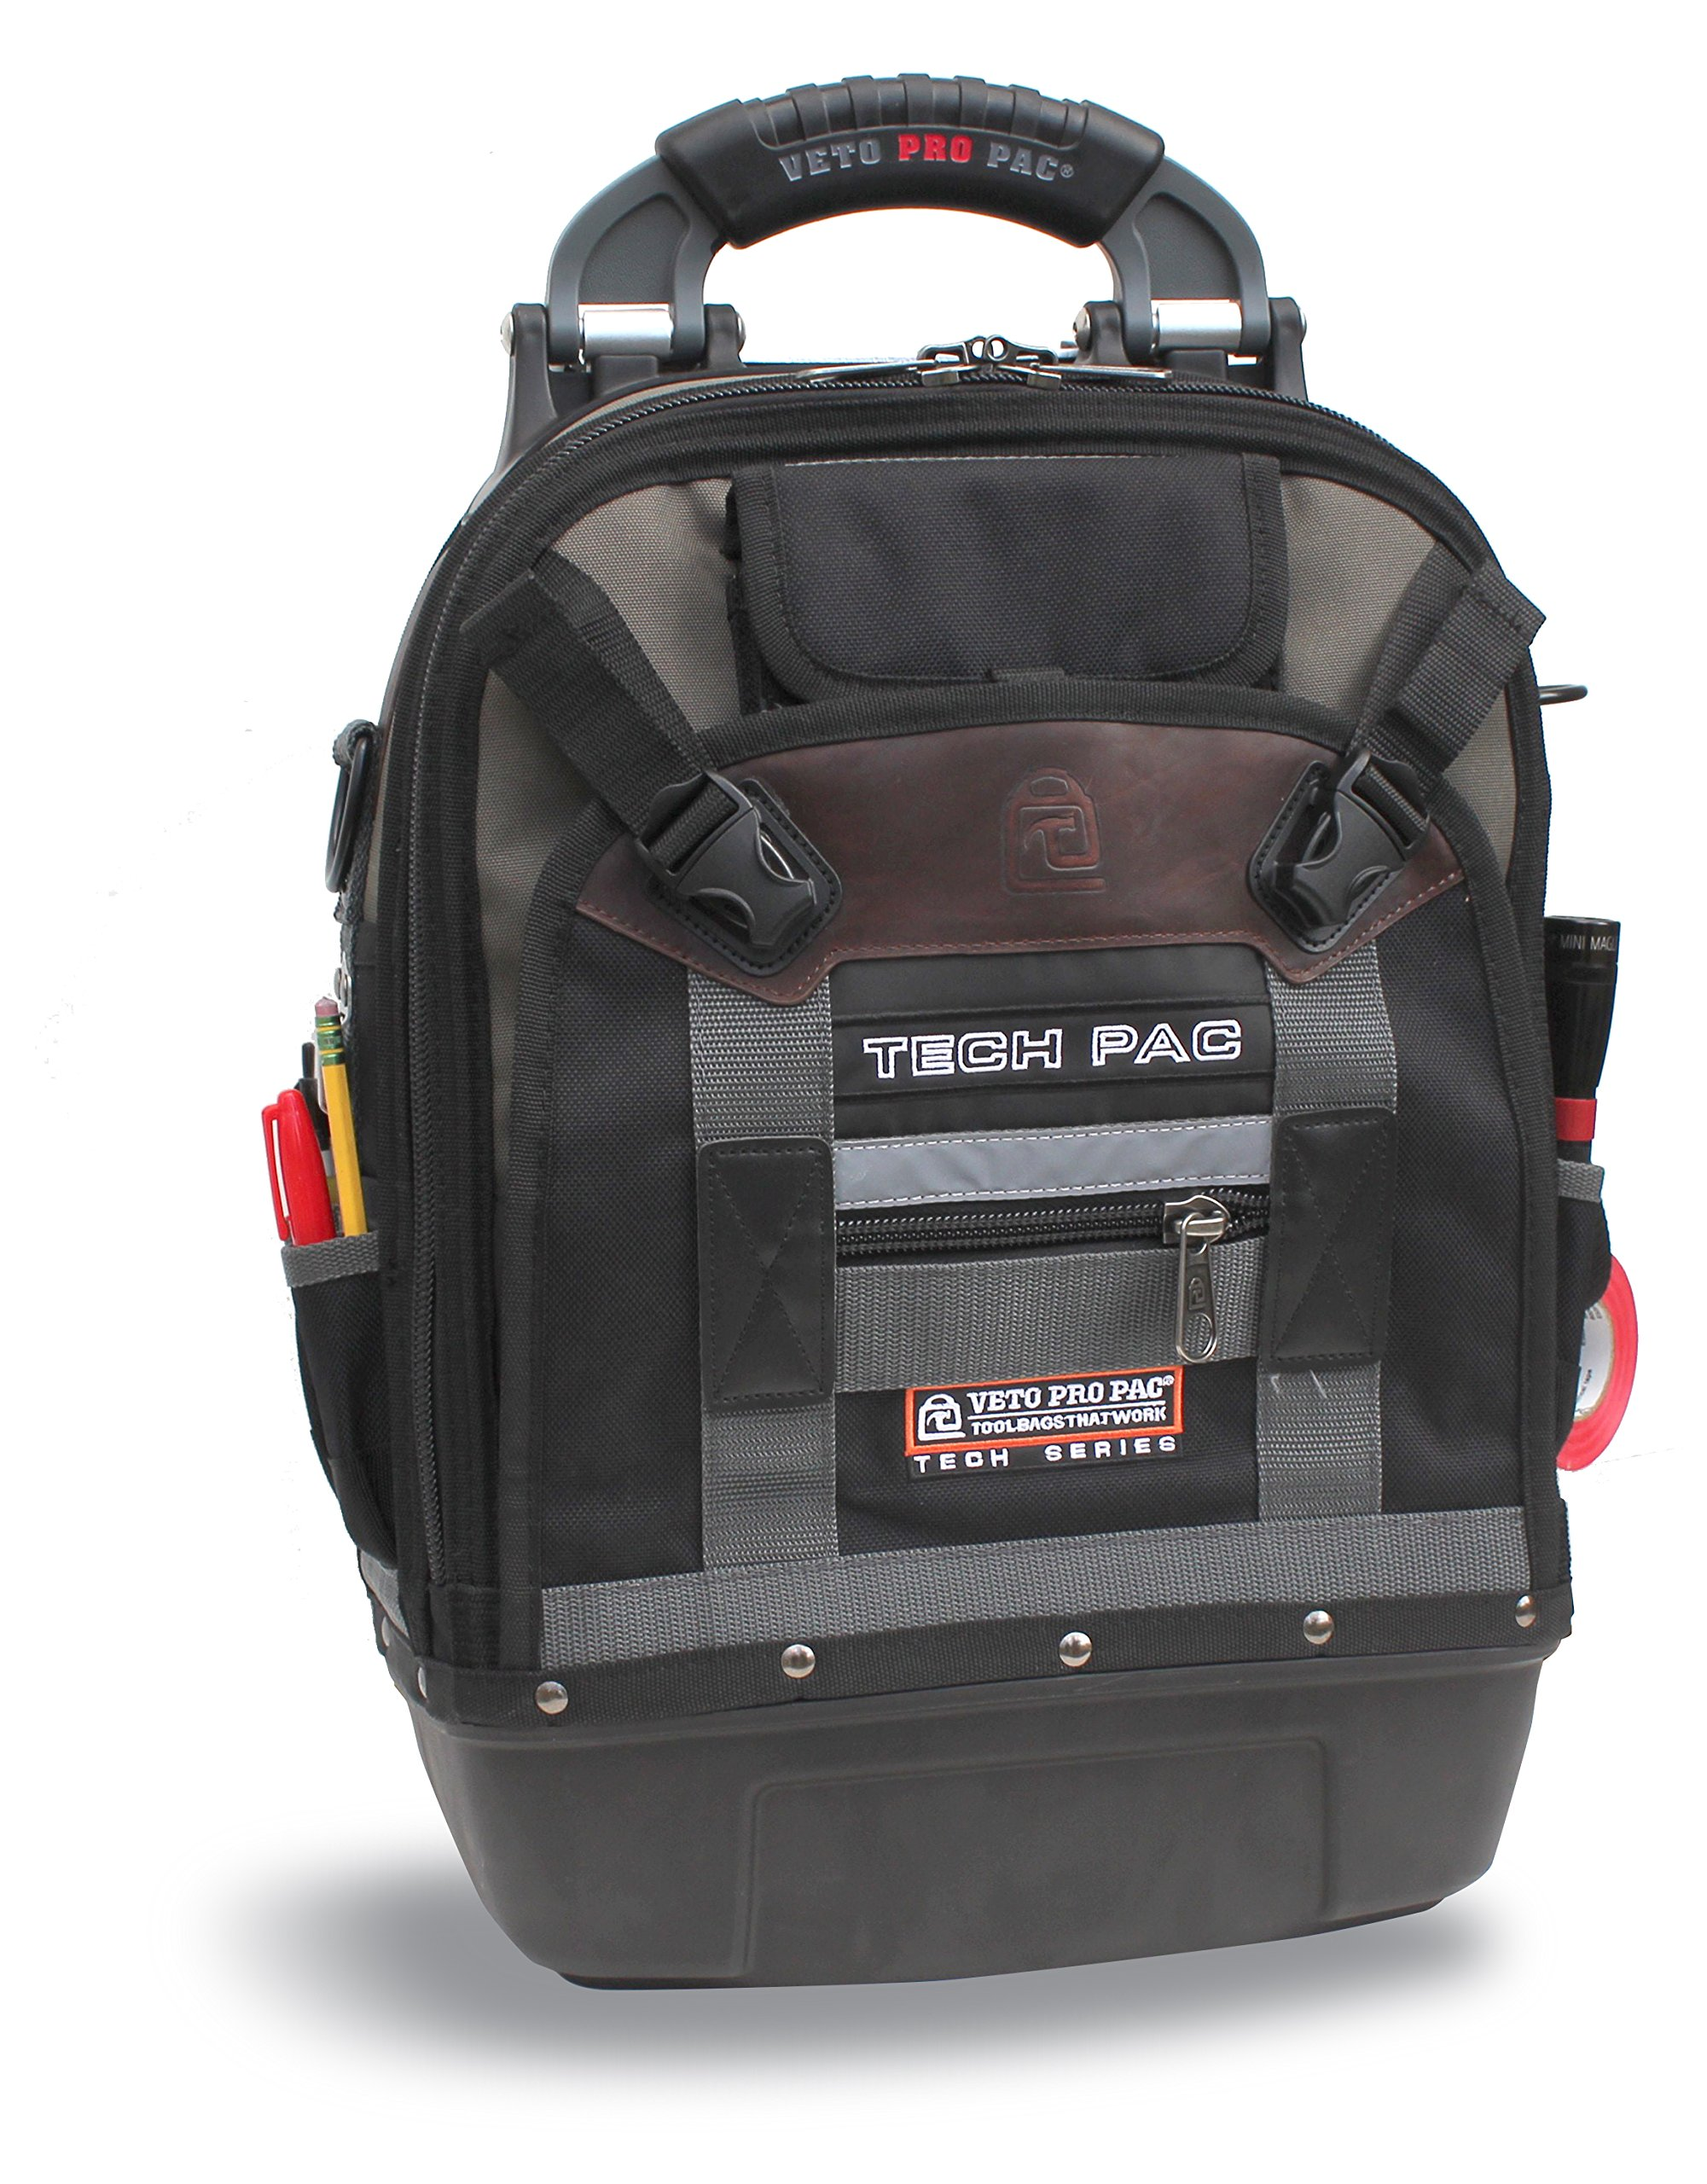 aafec17651 Best Rated in Tool Bags   Helpful Customer Reviews - Amazon.com